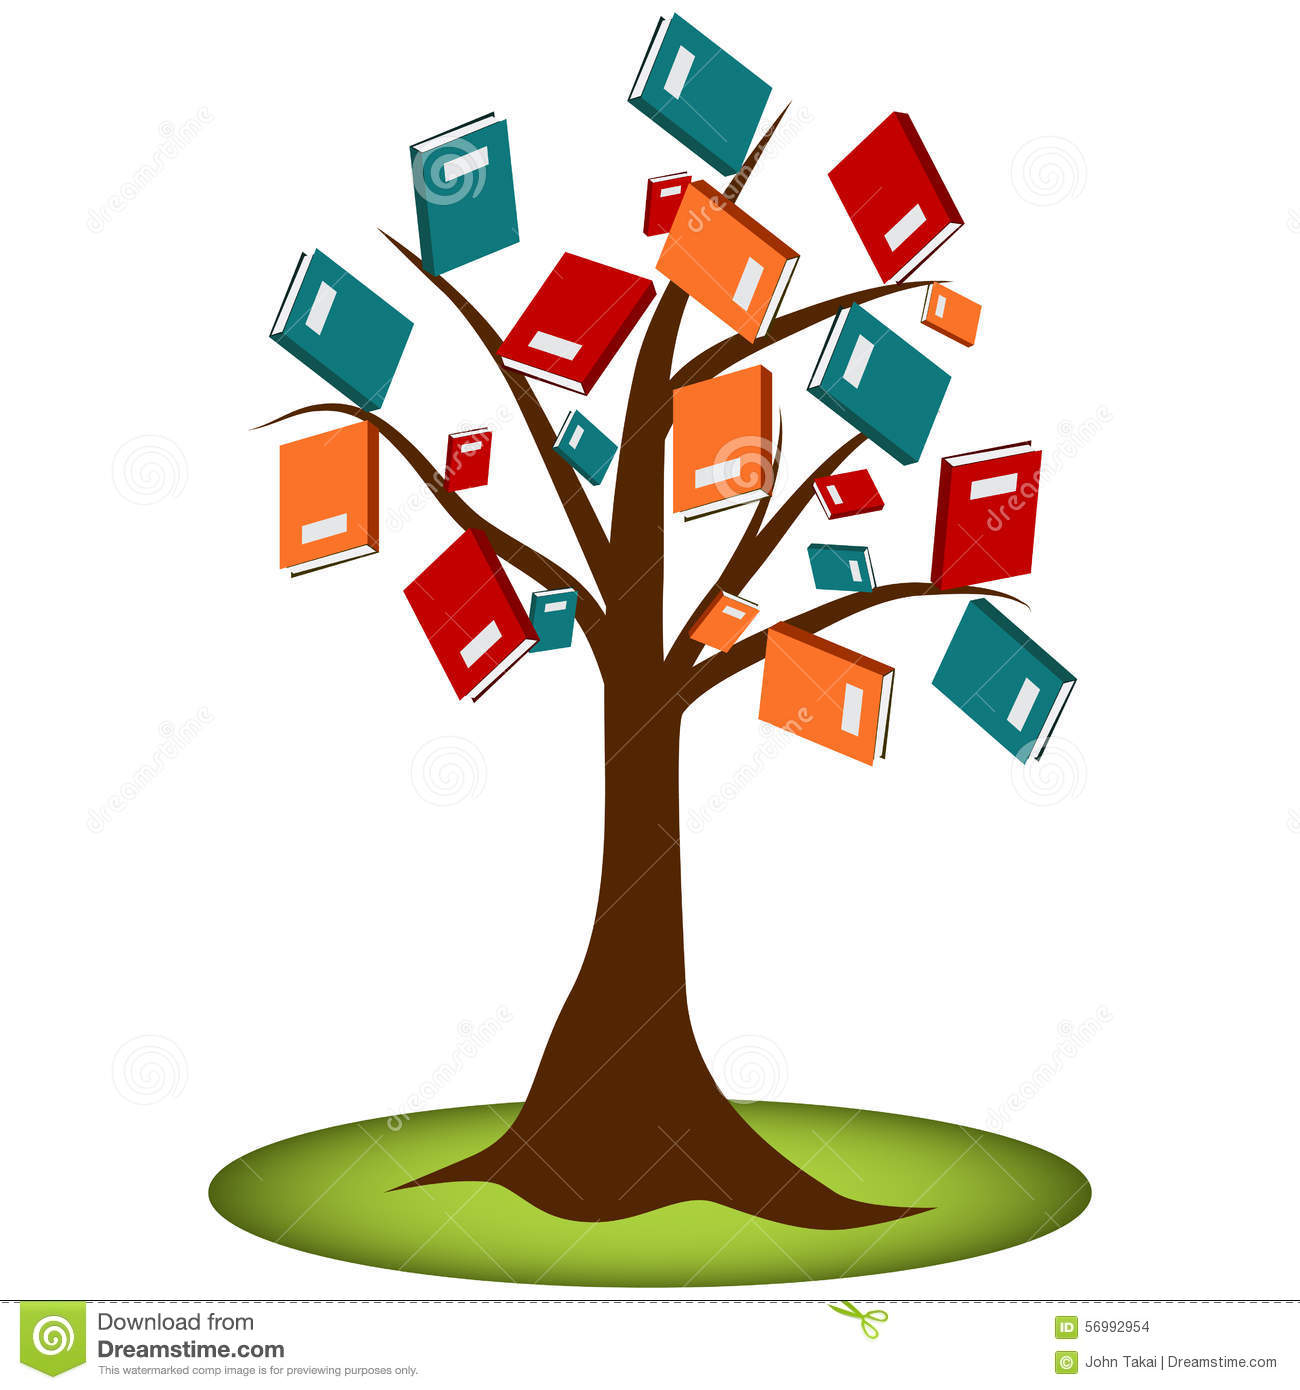 oxford reading tree clip art download - photo #21